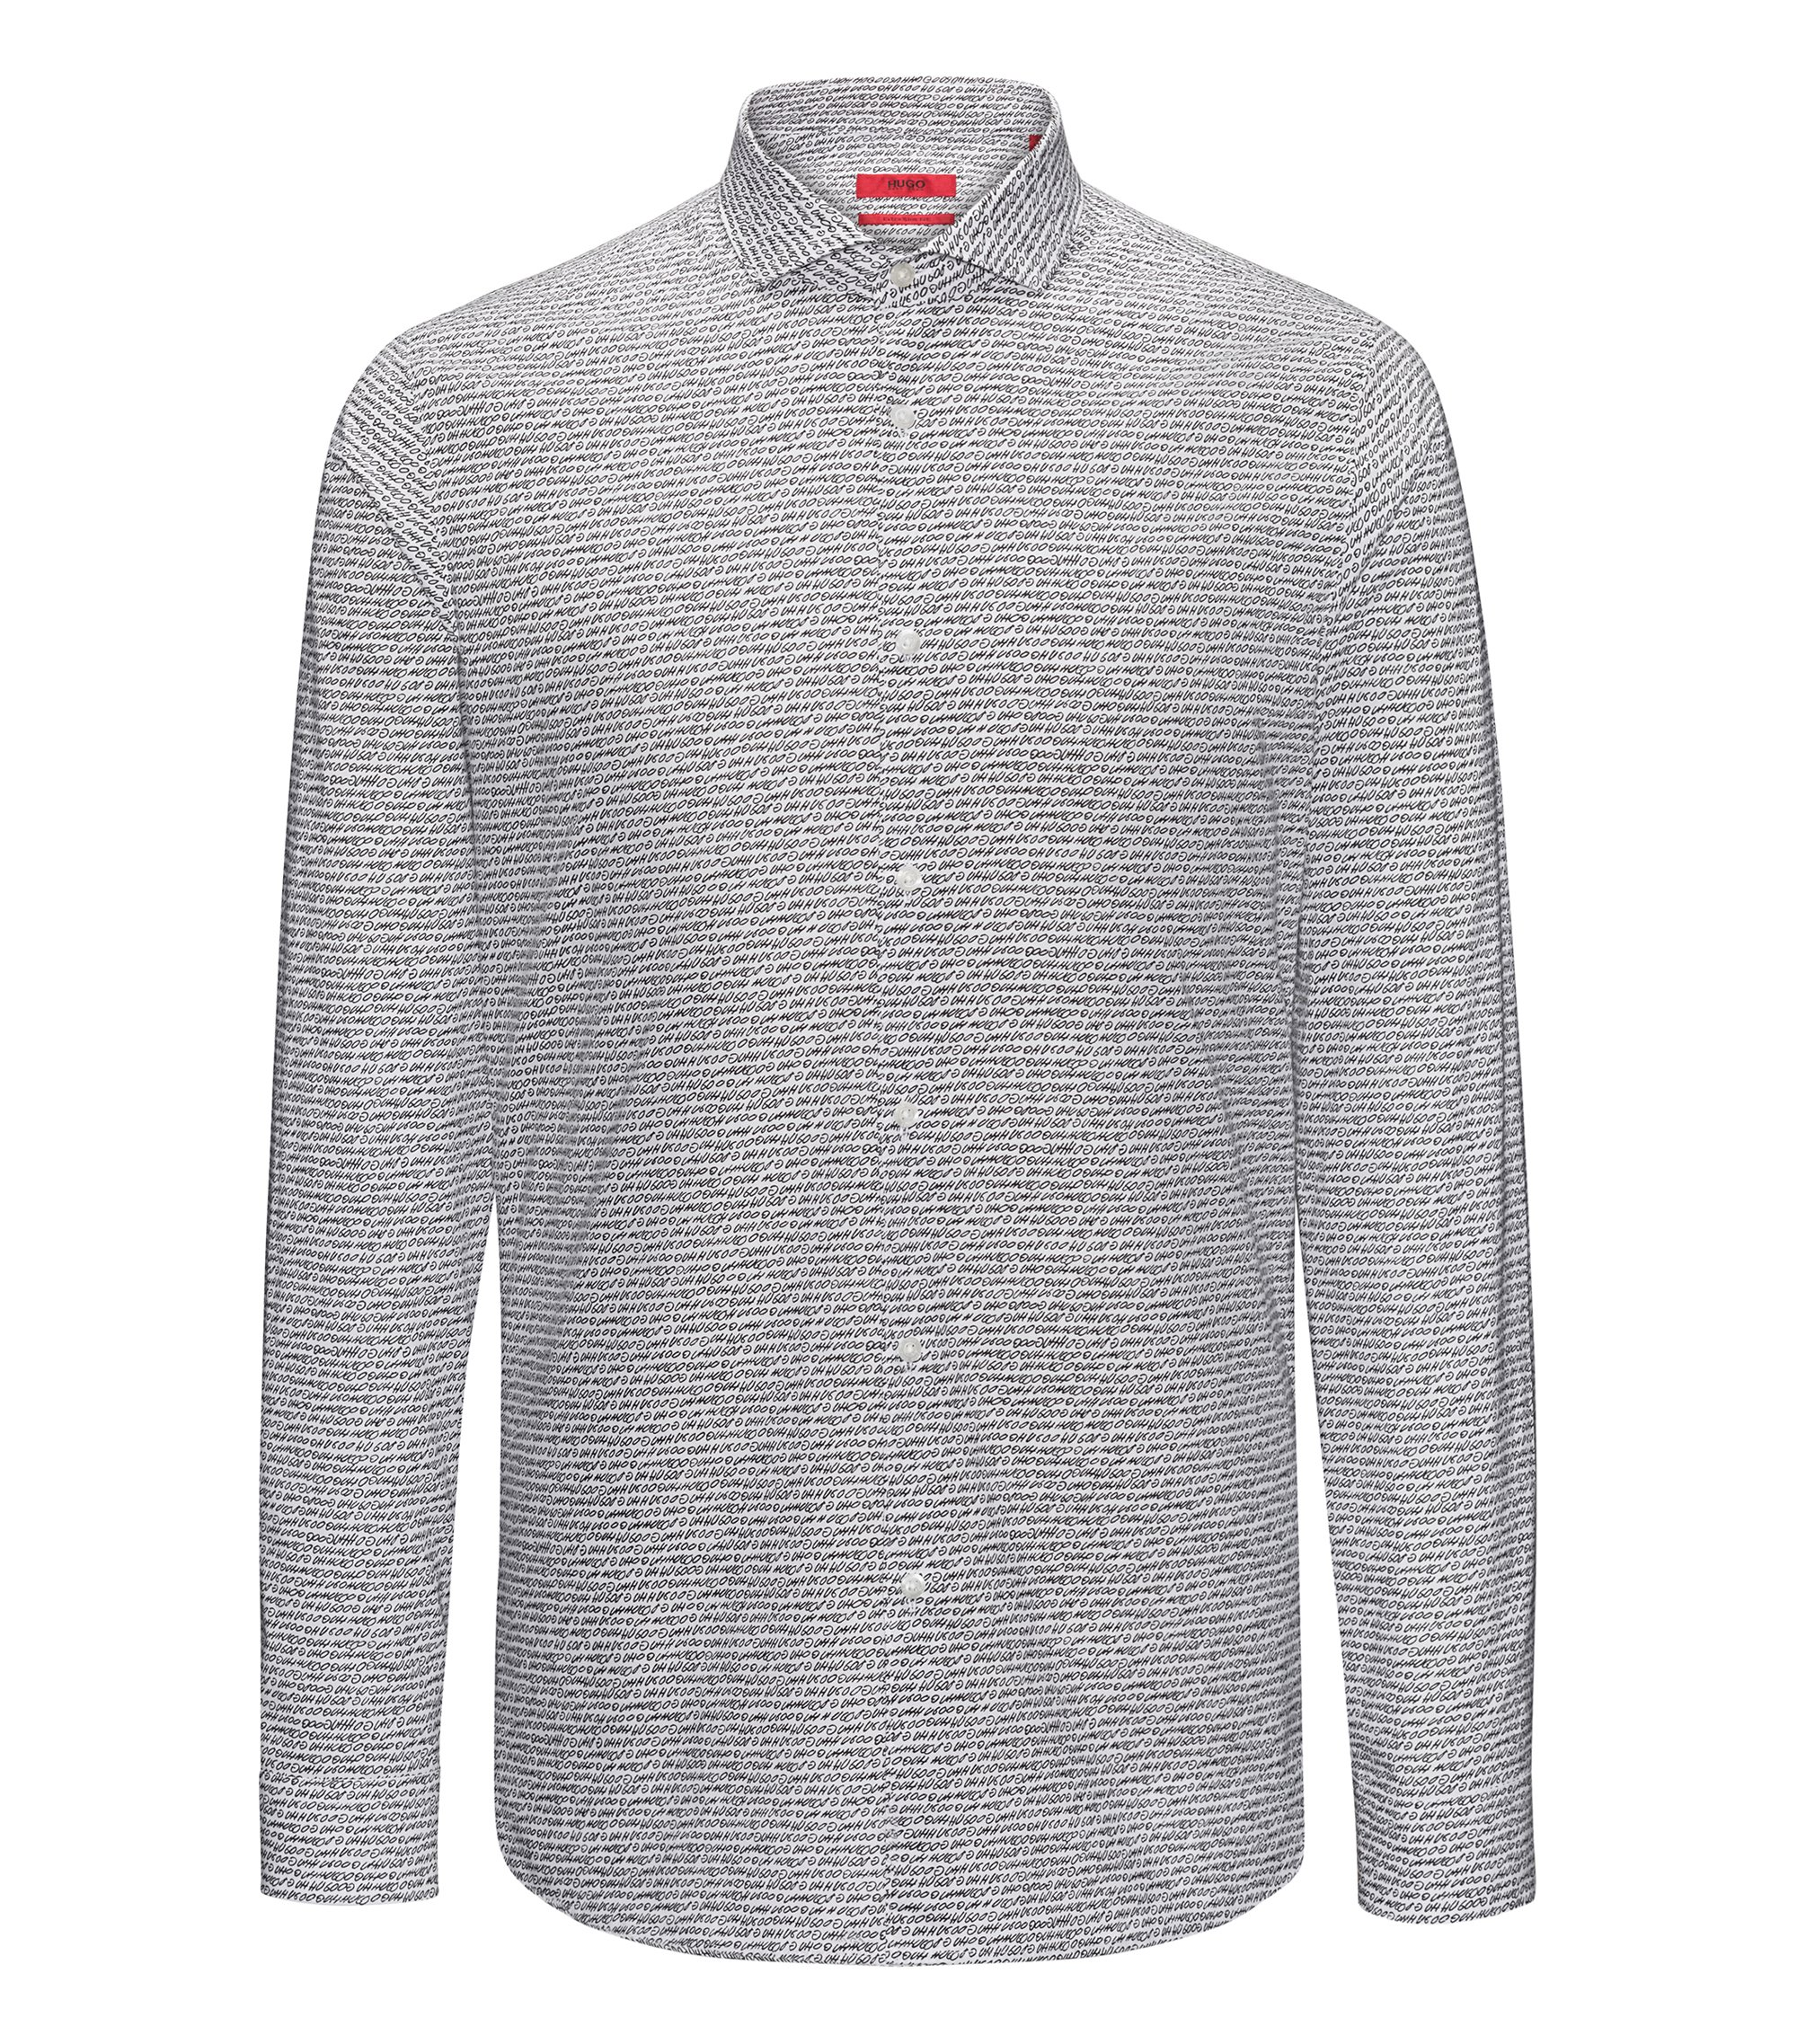 Extra-slim-fit cotton shirt with handwritten pigment print, Patterned